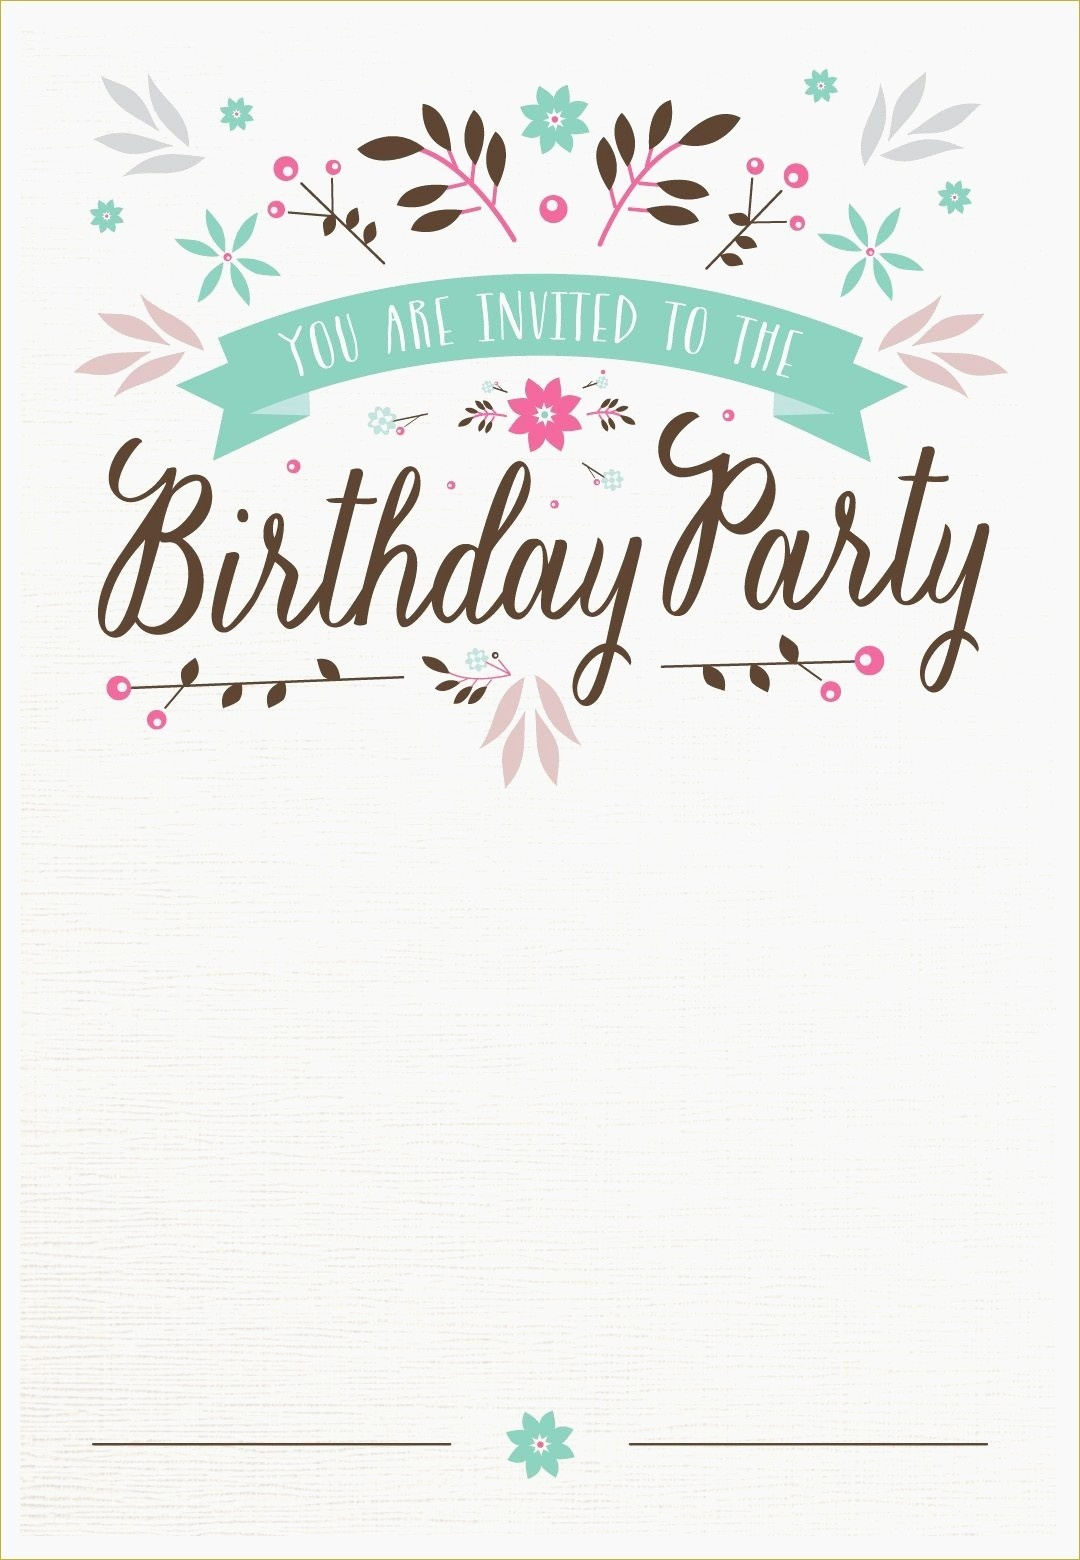 Mermaid Birthday Invitations Diy Diy 16 | Wadatlanta - Mermaid Birthday Invitations Free Printable